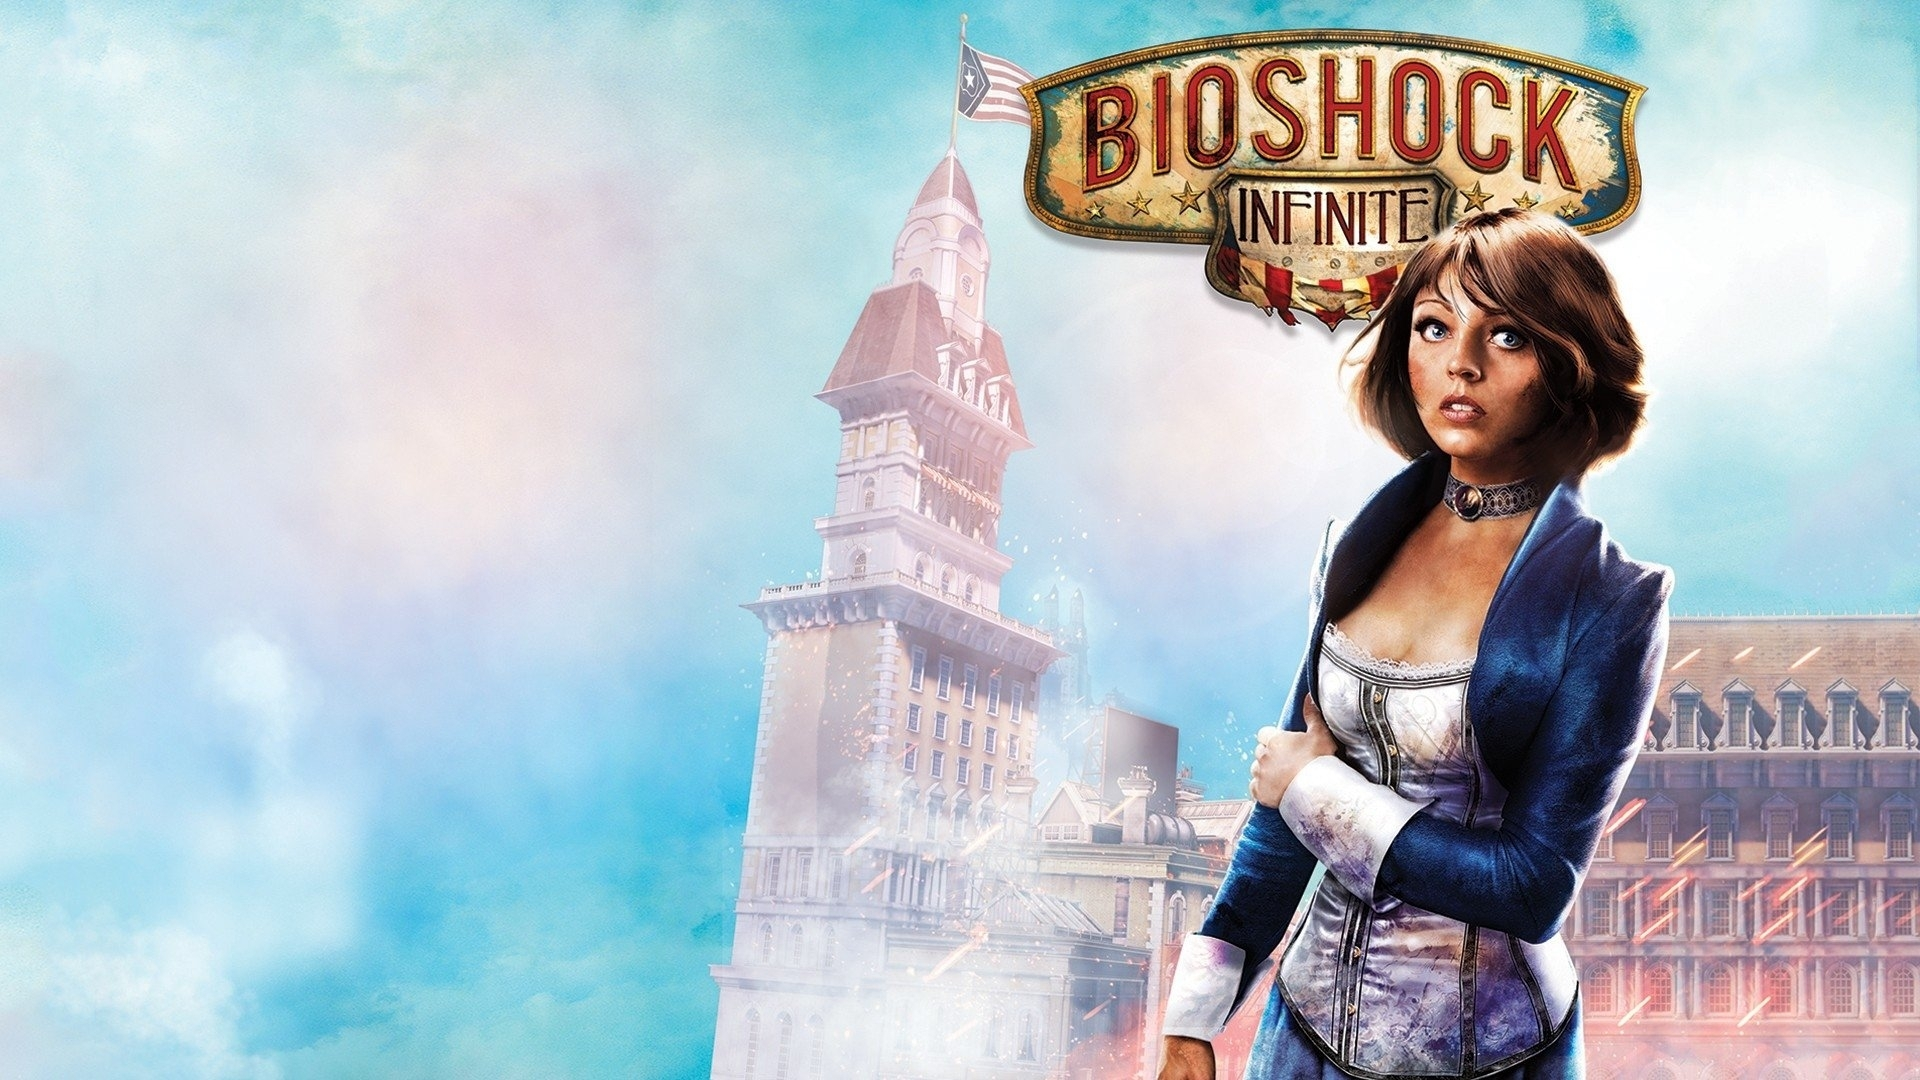 10 Best Bioshock Infinite Elizabeth Wallpaper FULL HD 1920×1080 For PC Desktop